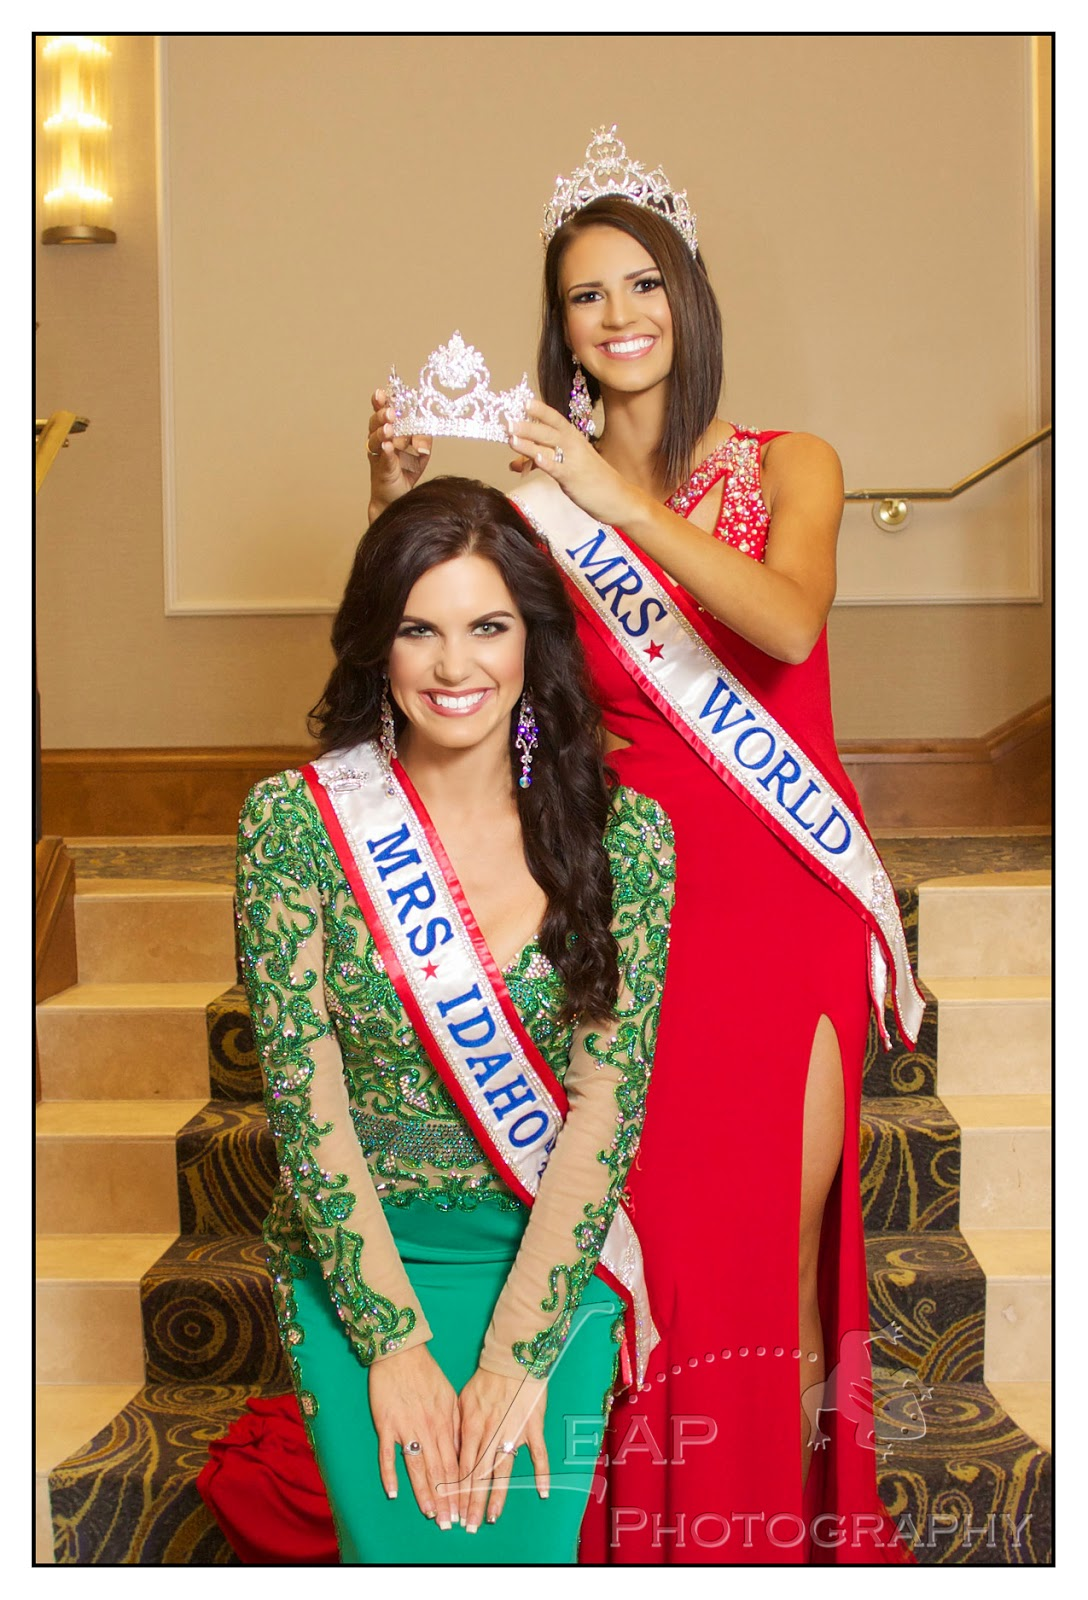 Mrs. Idaho 2014 being crowned by Mrs. World 2014